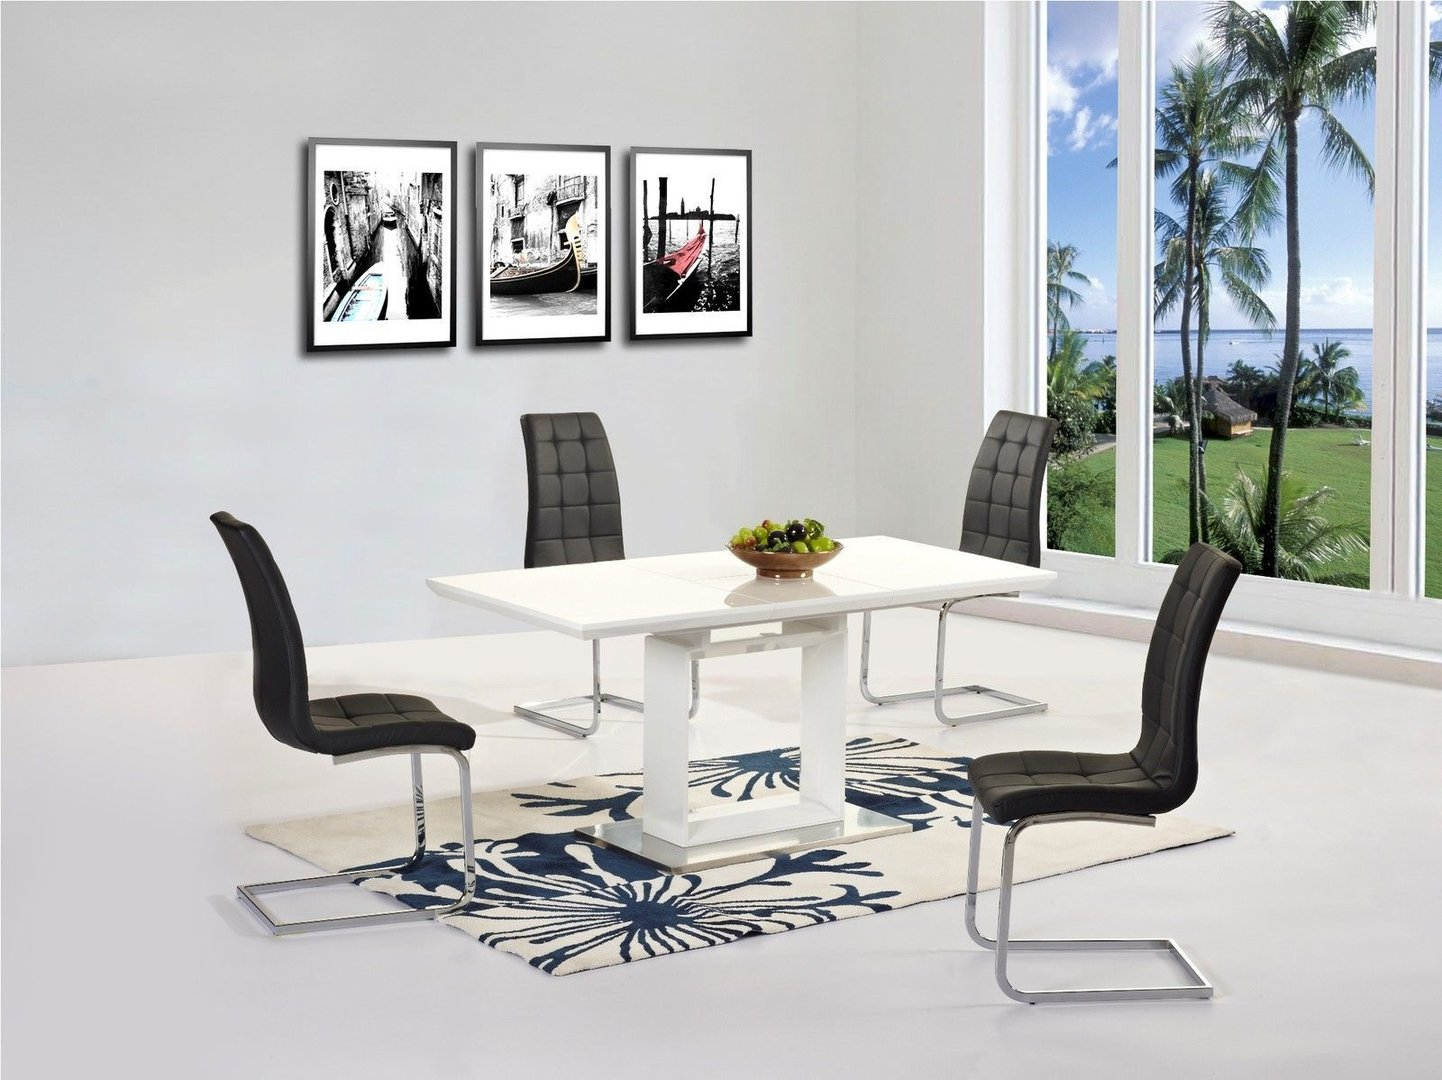 New white high gloss extending dining table and 6 black chairs - White extending dining table and chairs ...